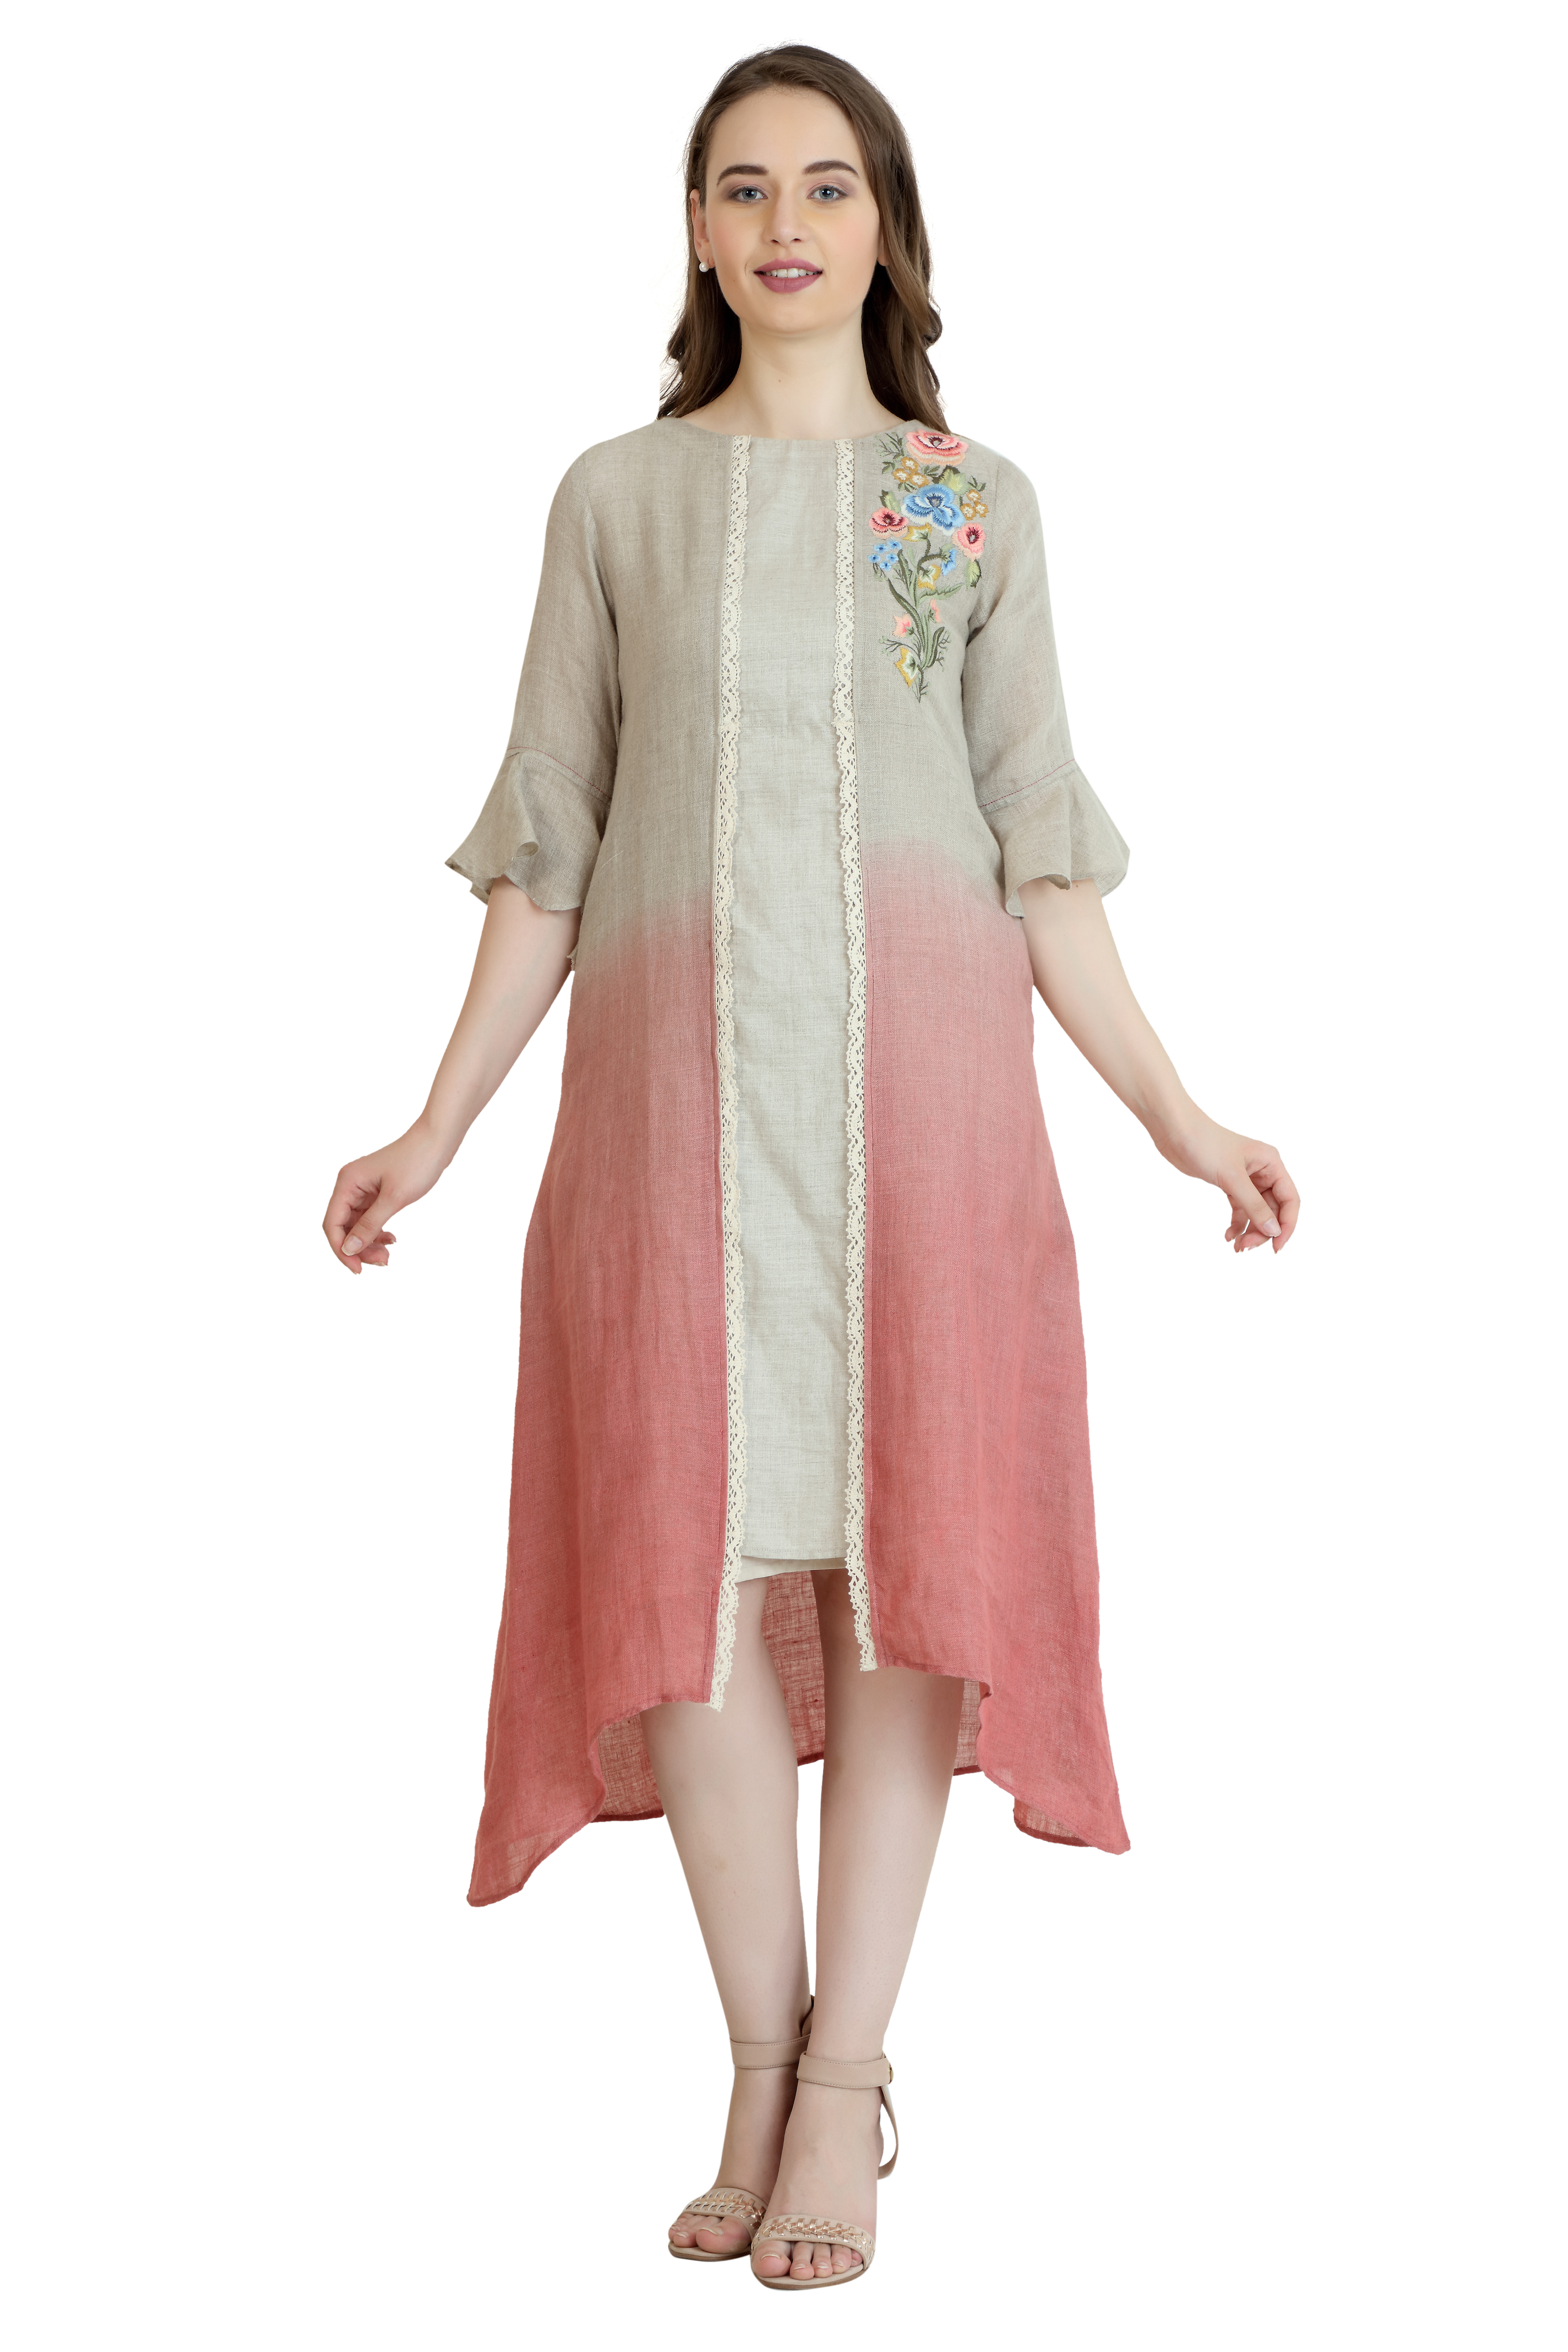 190144 Natural And Old Rose Ombre Linen Dress With Embroidered Motif & Lace Trimmings (L,Natural and Old Rose Ombre)